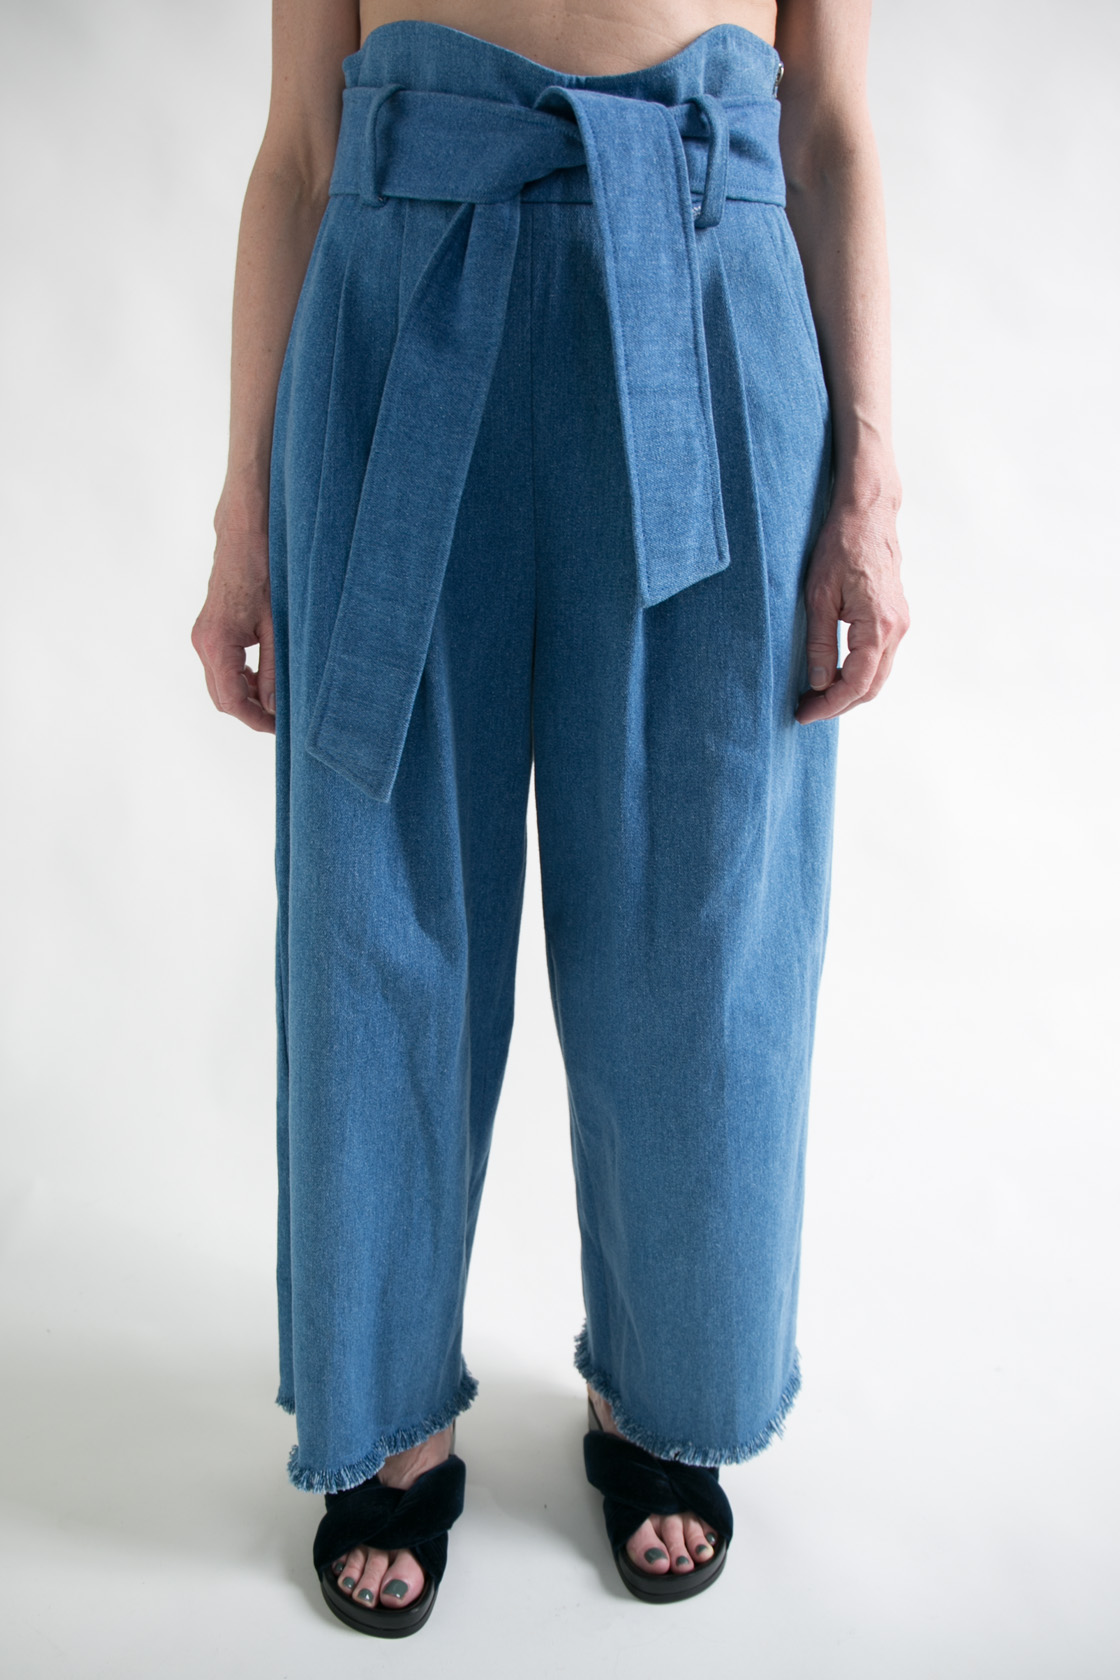 Sona Denim Pant  S M  $325